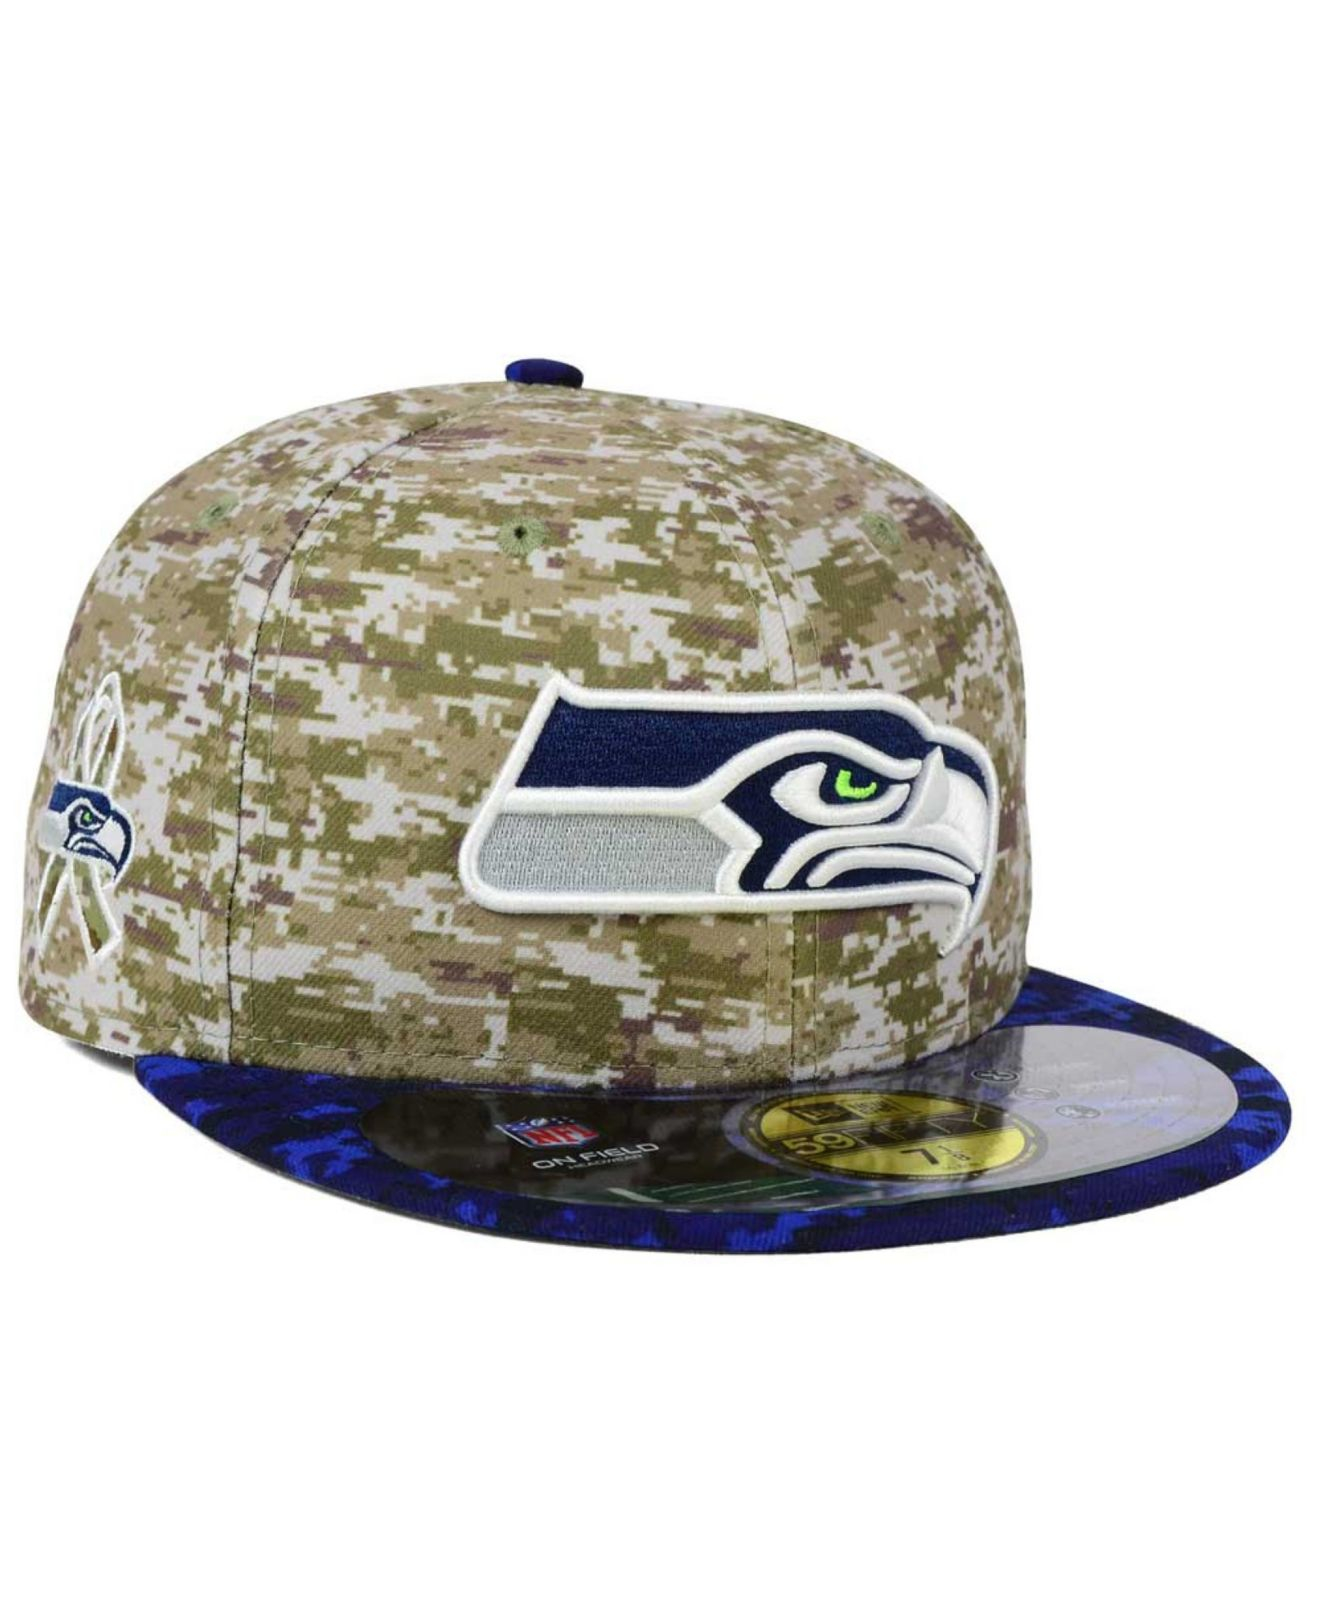 premium selection f6c97 0c88e ... uk lyst ktz seattle seahawks salute to service 59fifty cap in blue  48dce a444d